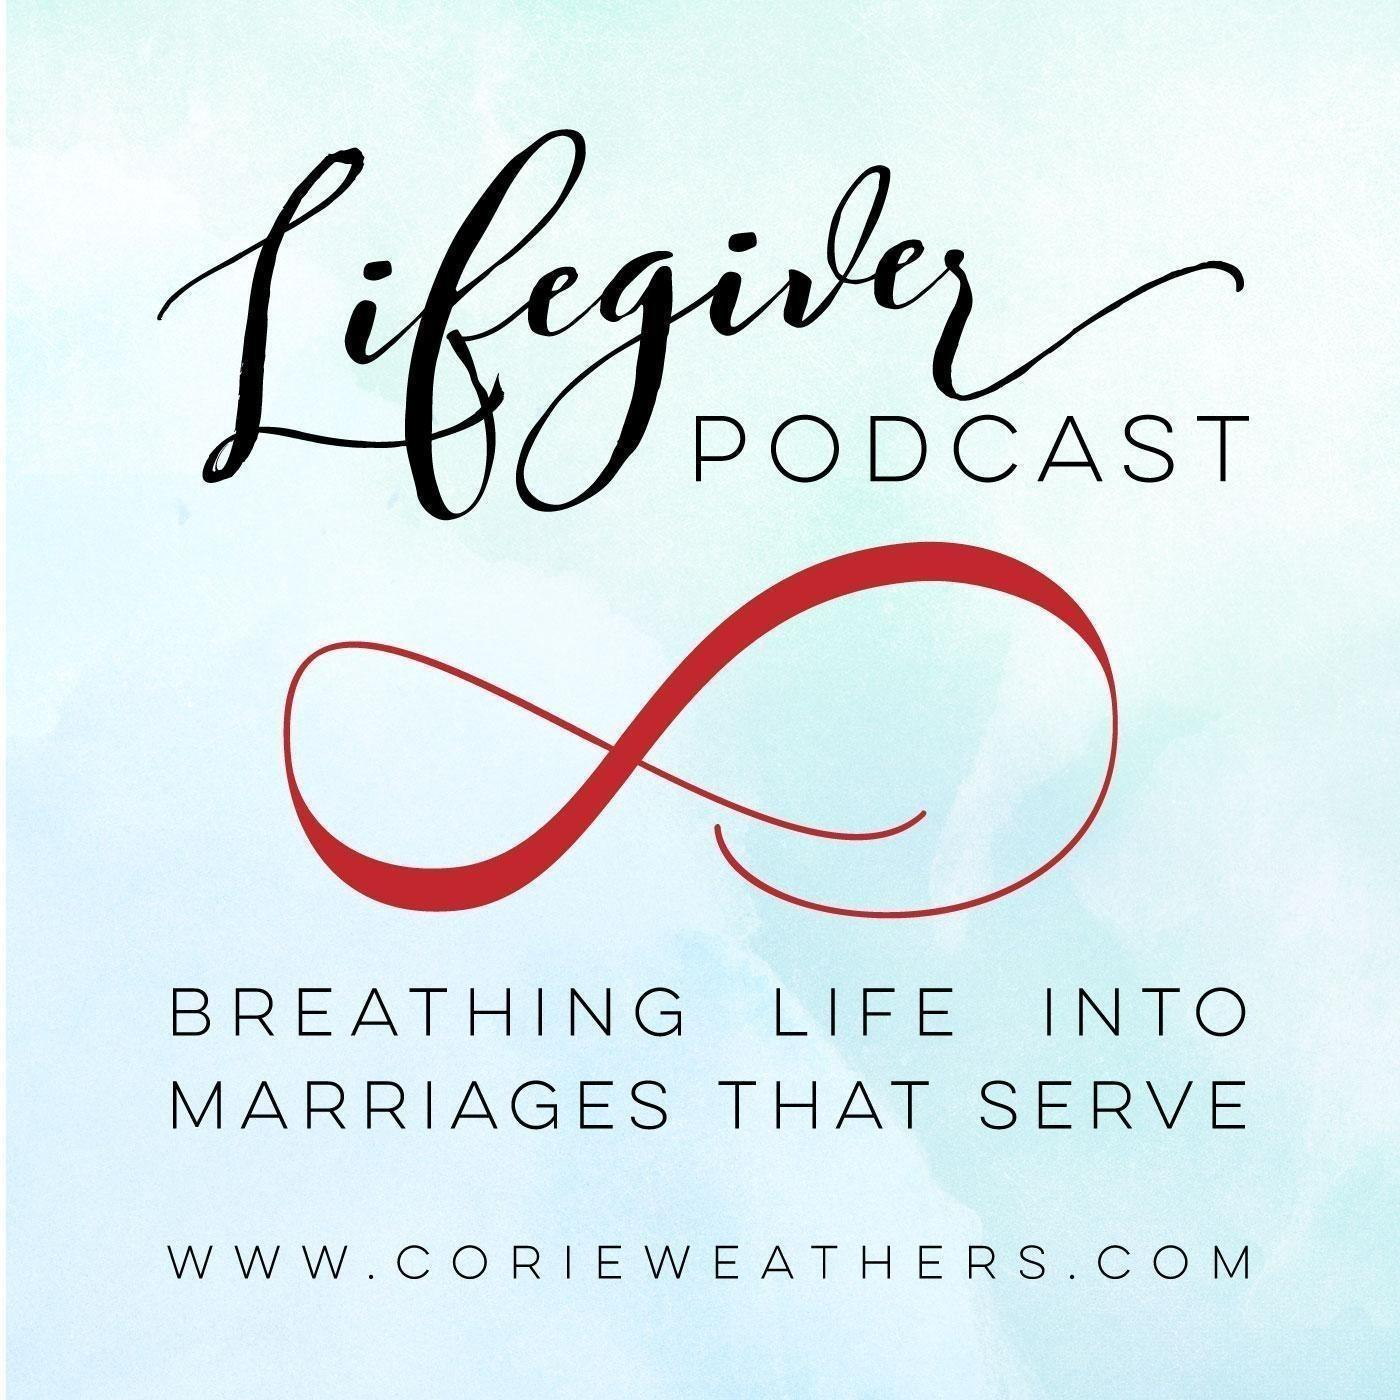 The Lifegiver Podcast: For Marriages that Serve